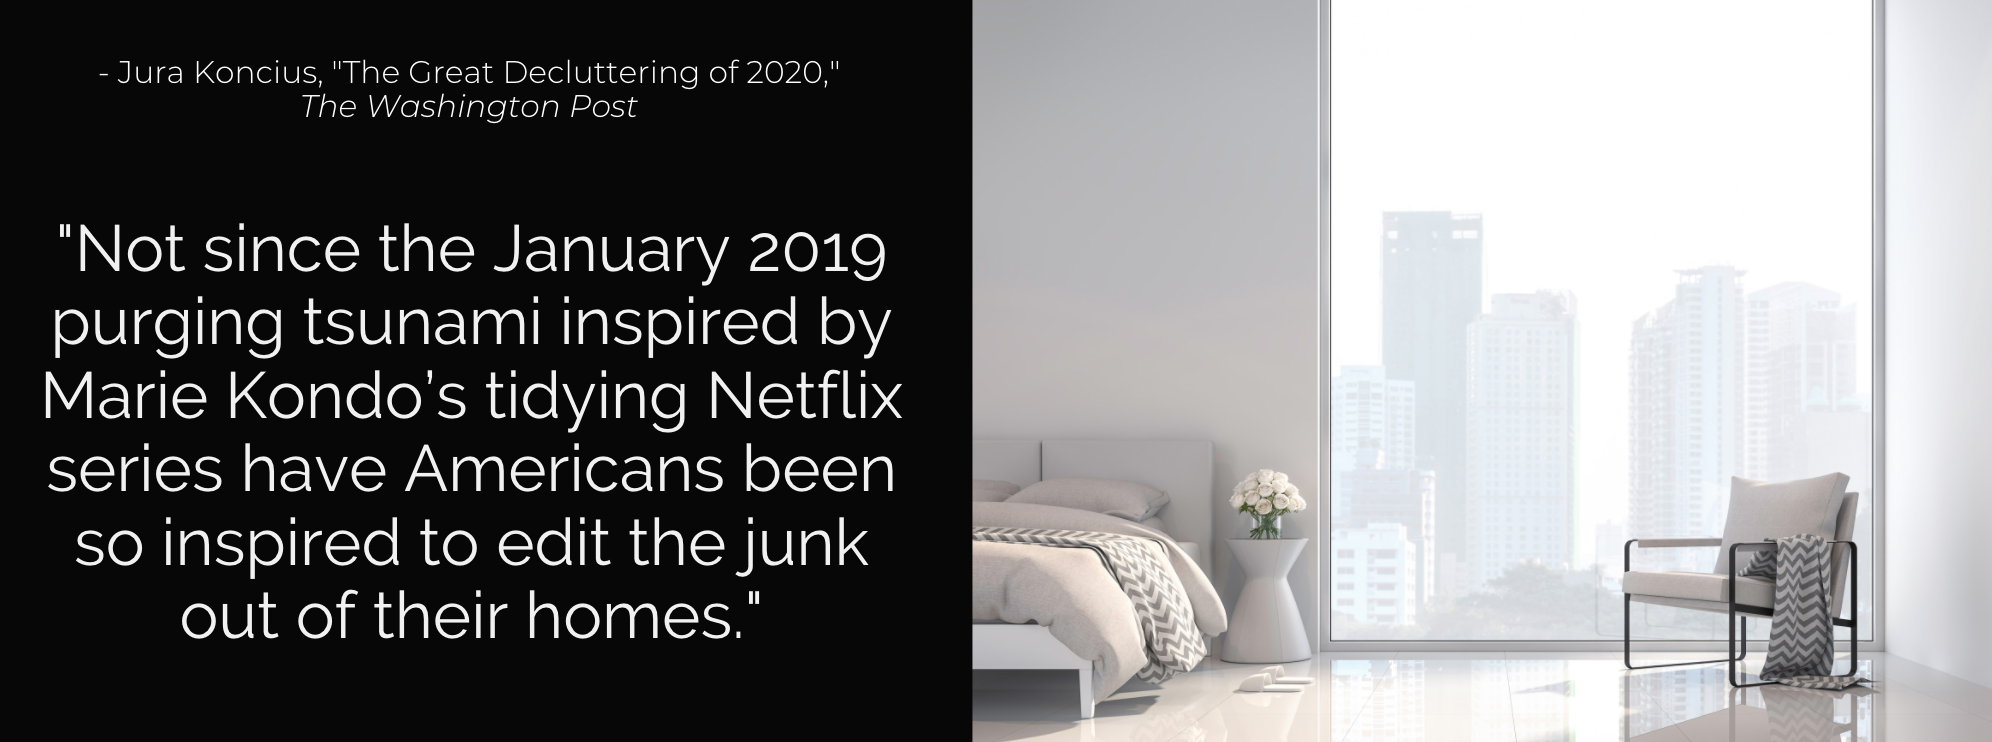 The Great Decluttering of 2020